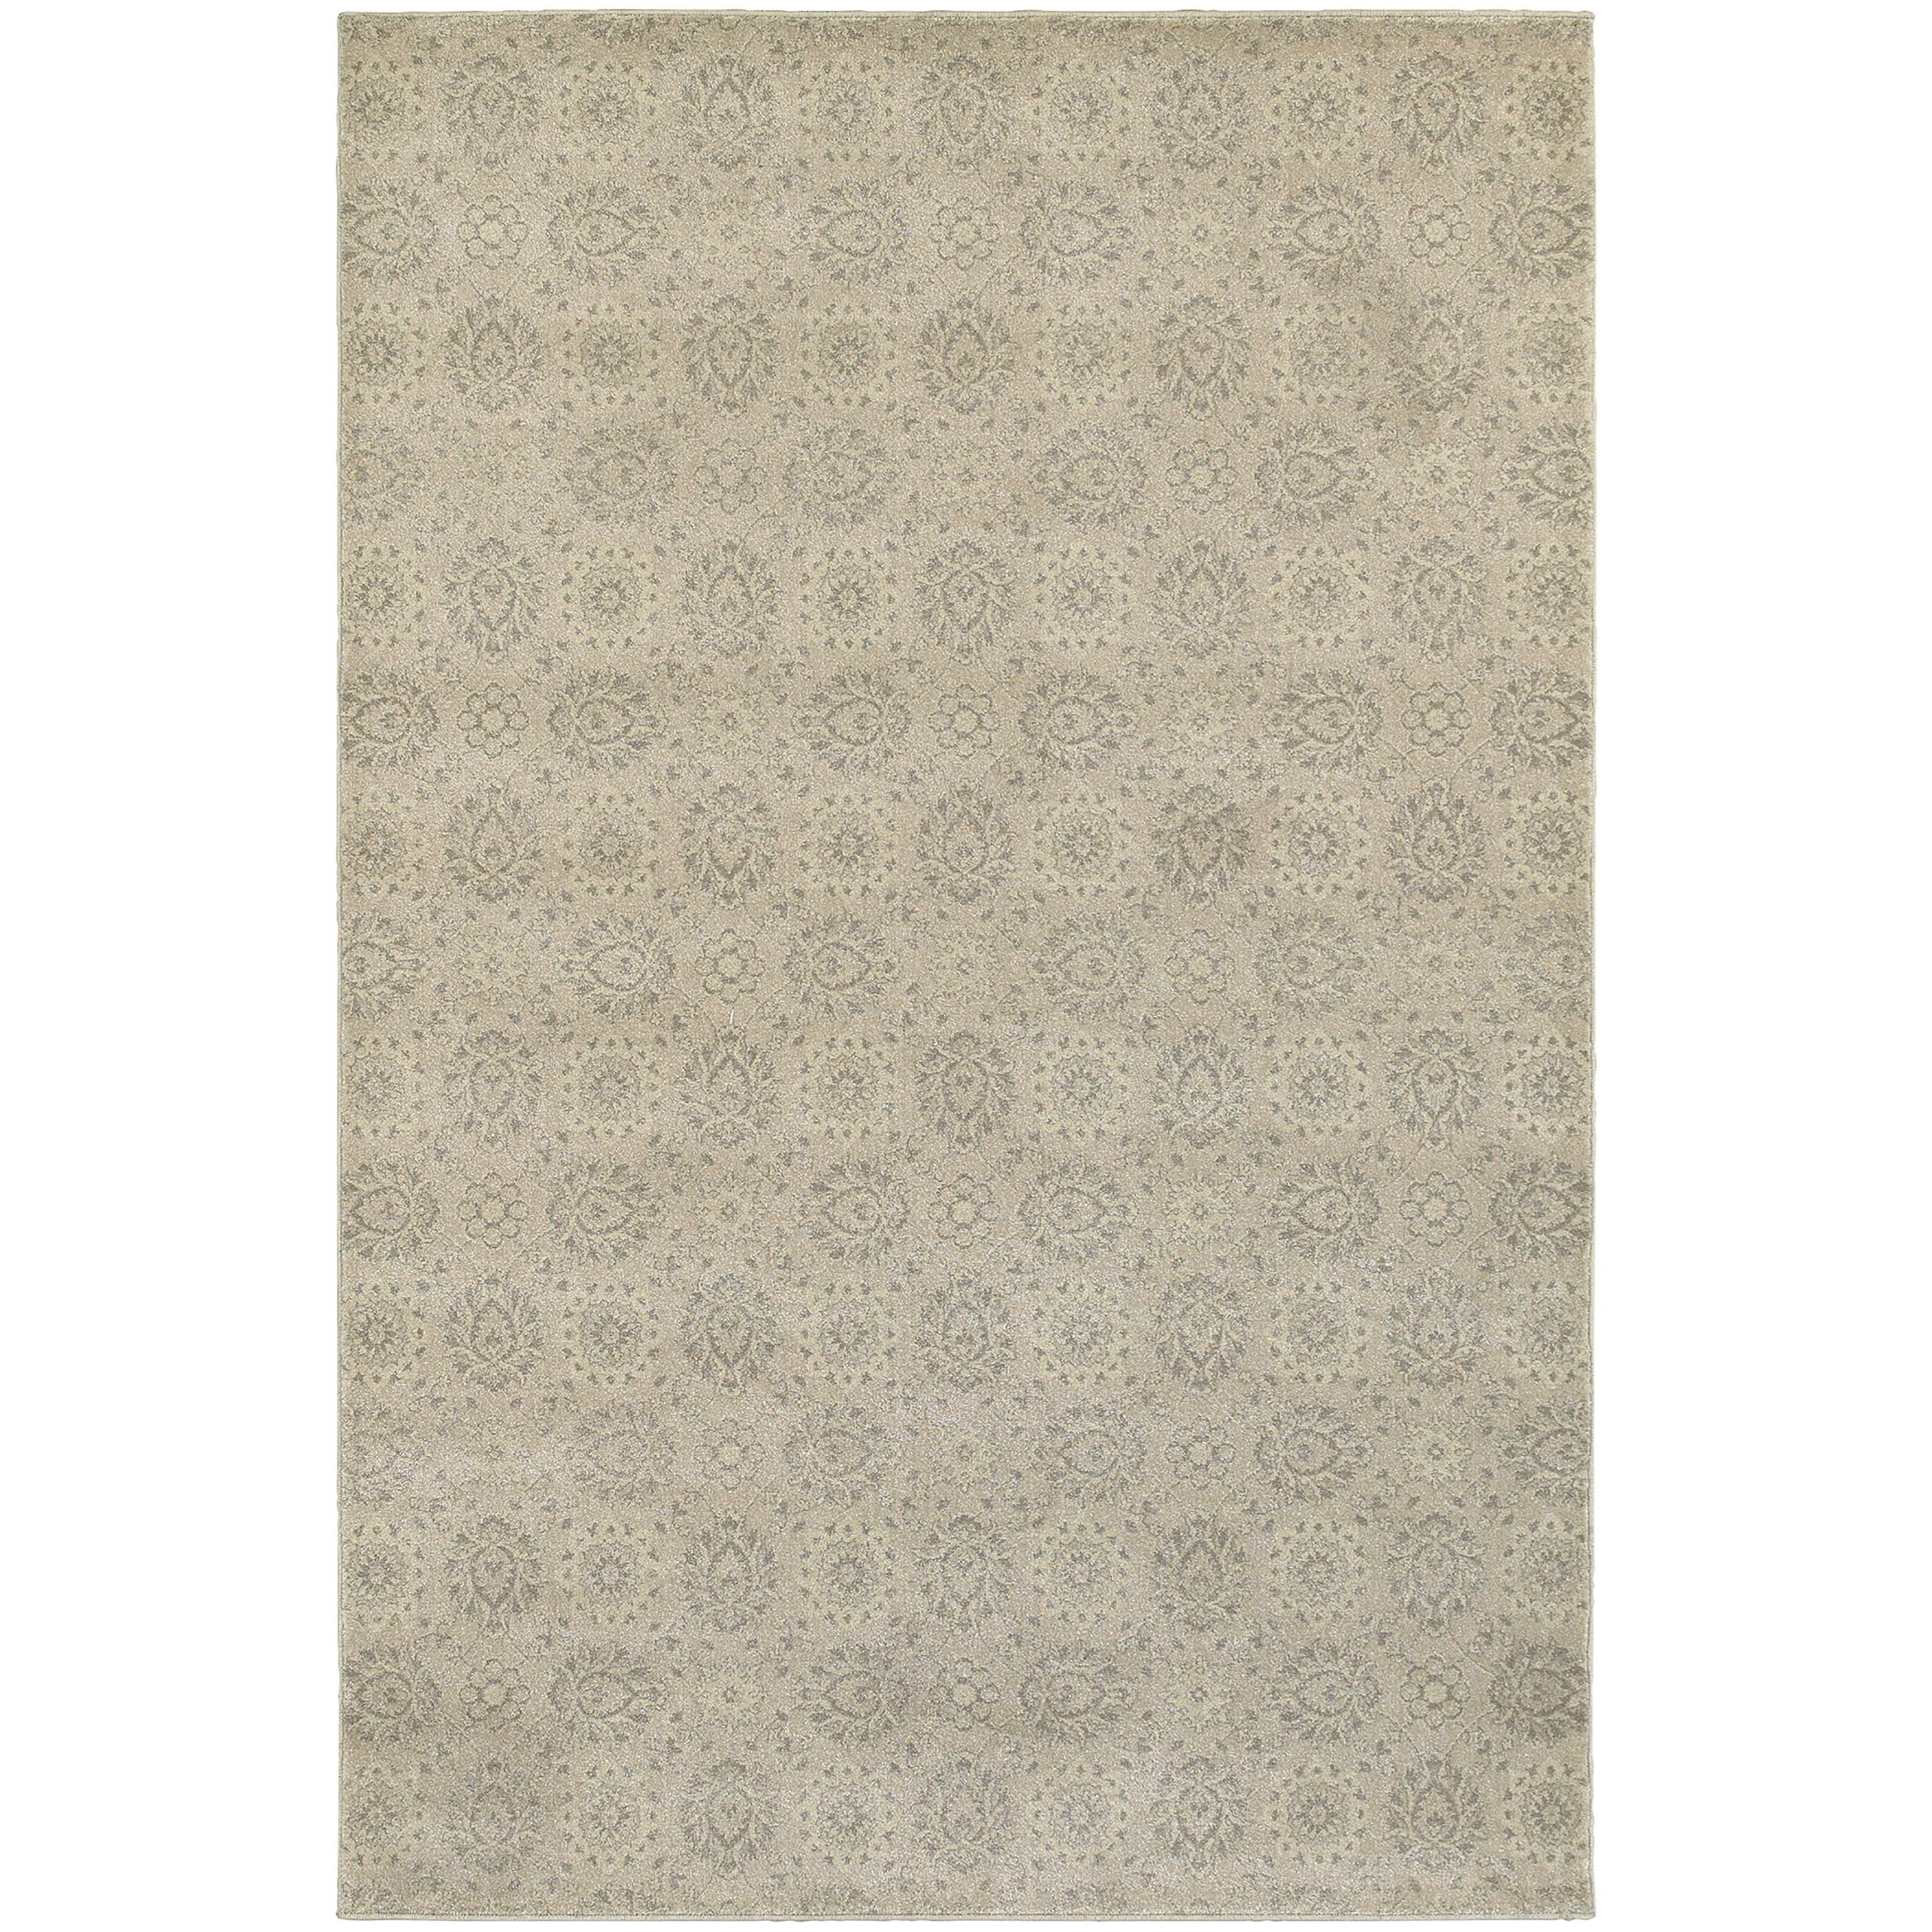 """Richmond 9'10"""" X 12'10"""" Rectangle Area Rug by Oriental Weavers at Esprit Decor Home Furnishings"""